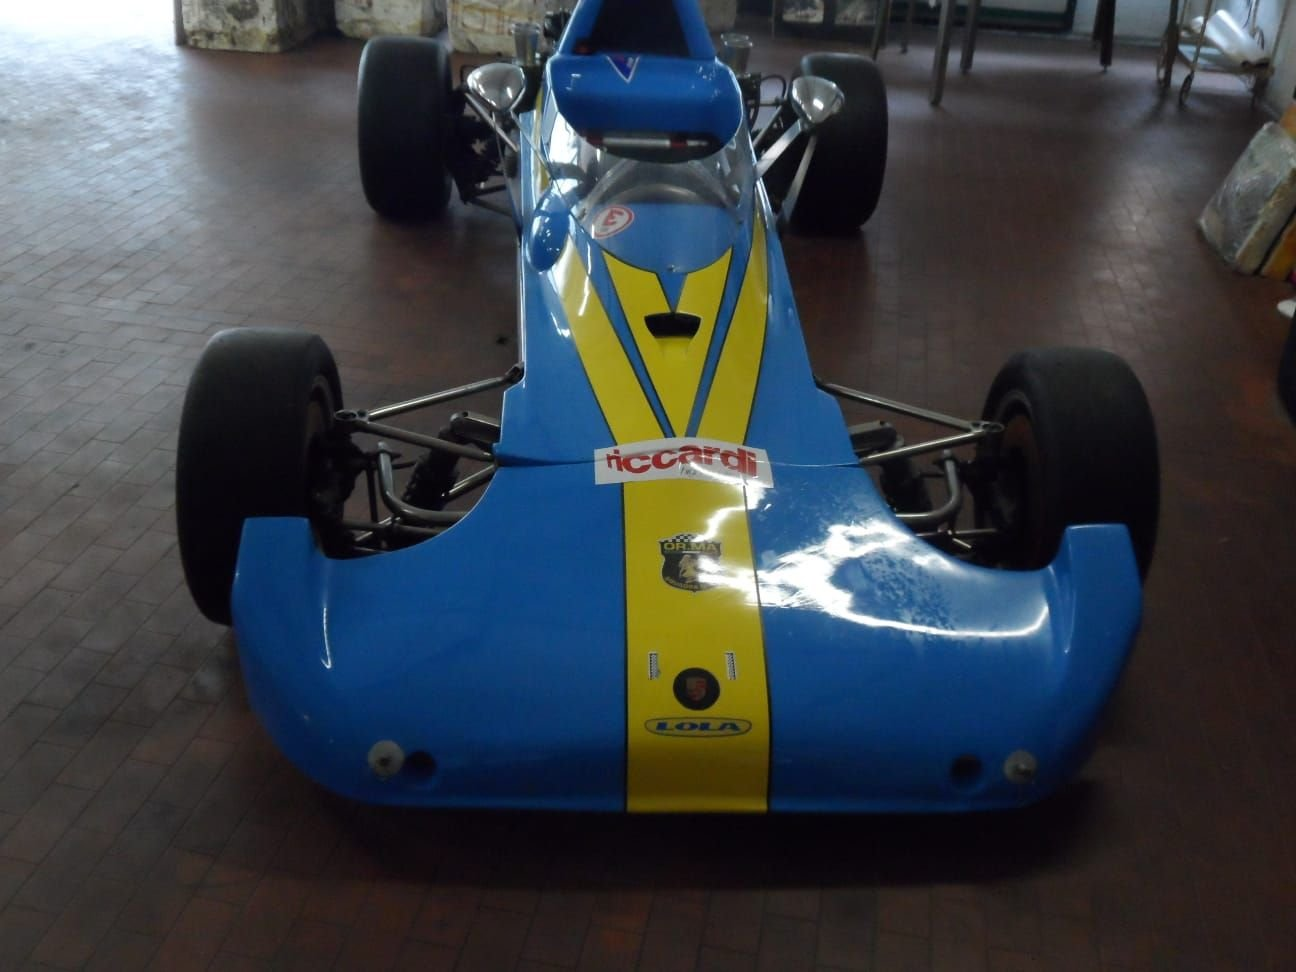 1974 LOLA CHASSIS FORMULA 3 +  Hewland  Gearbox. For Sale (picture 3 of 10)